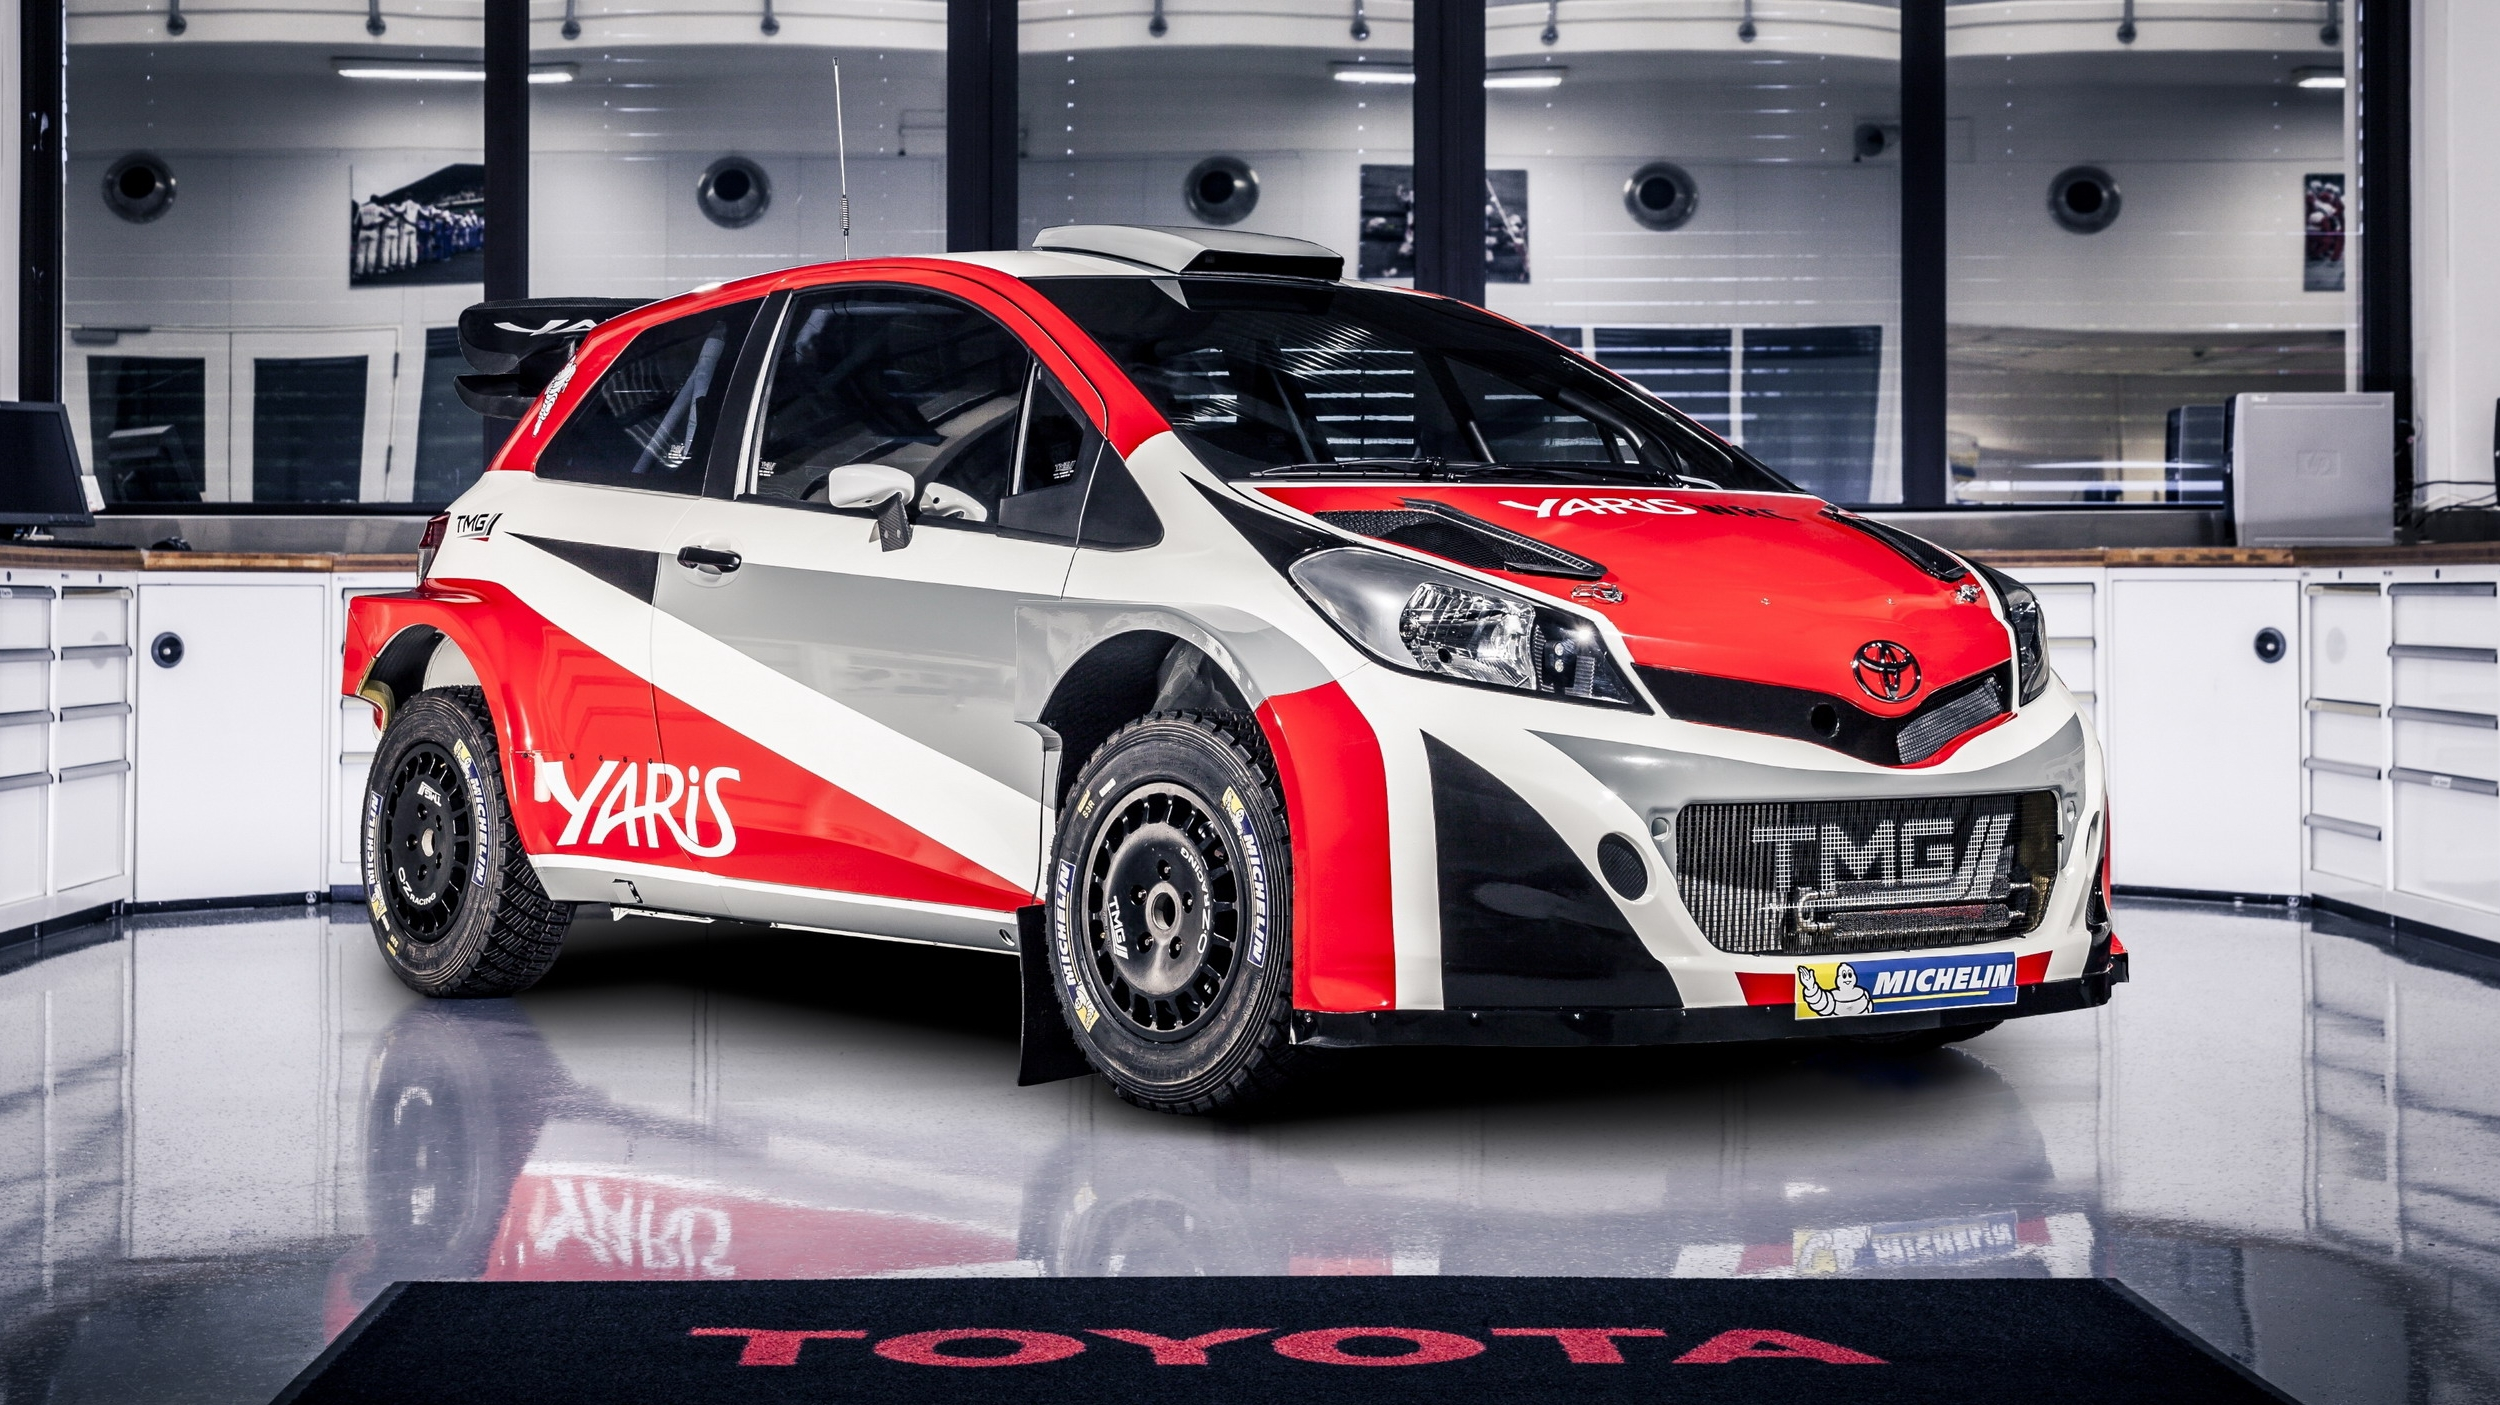 2015 toyota yaris wrc review - top speed